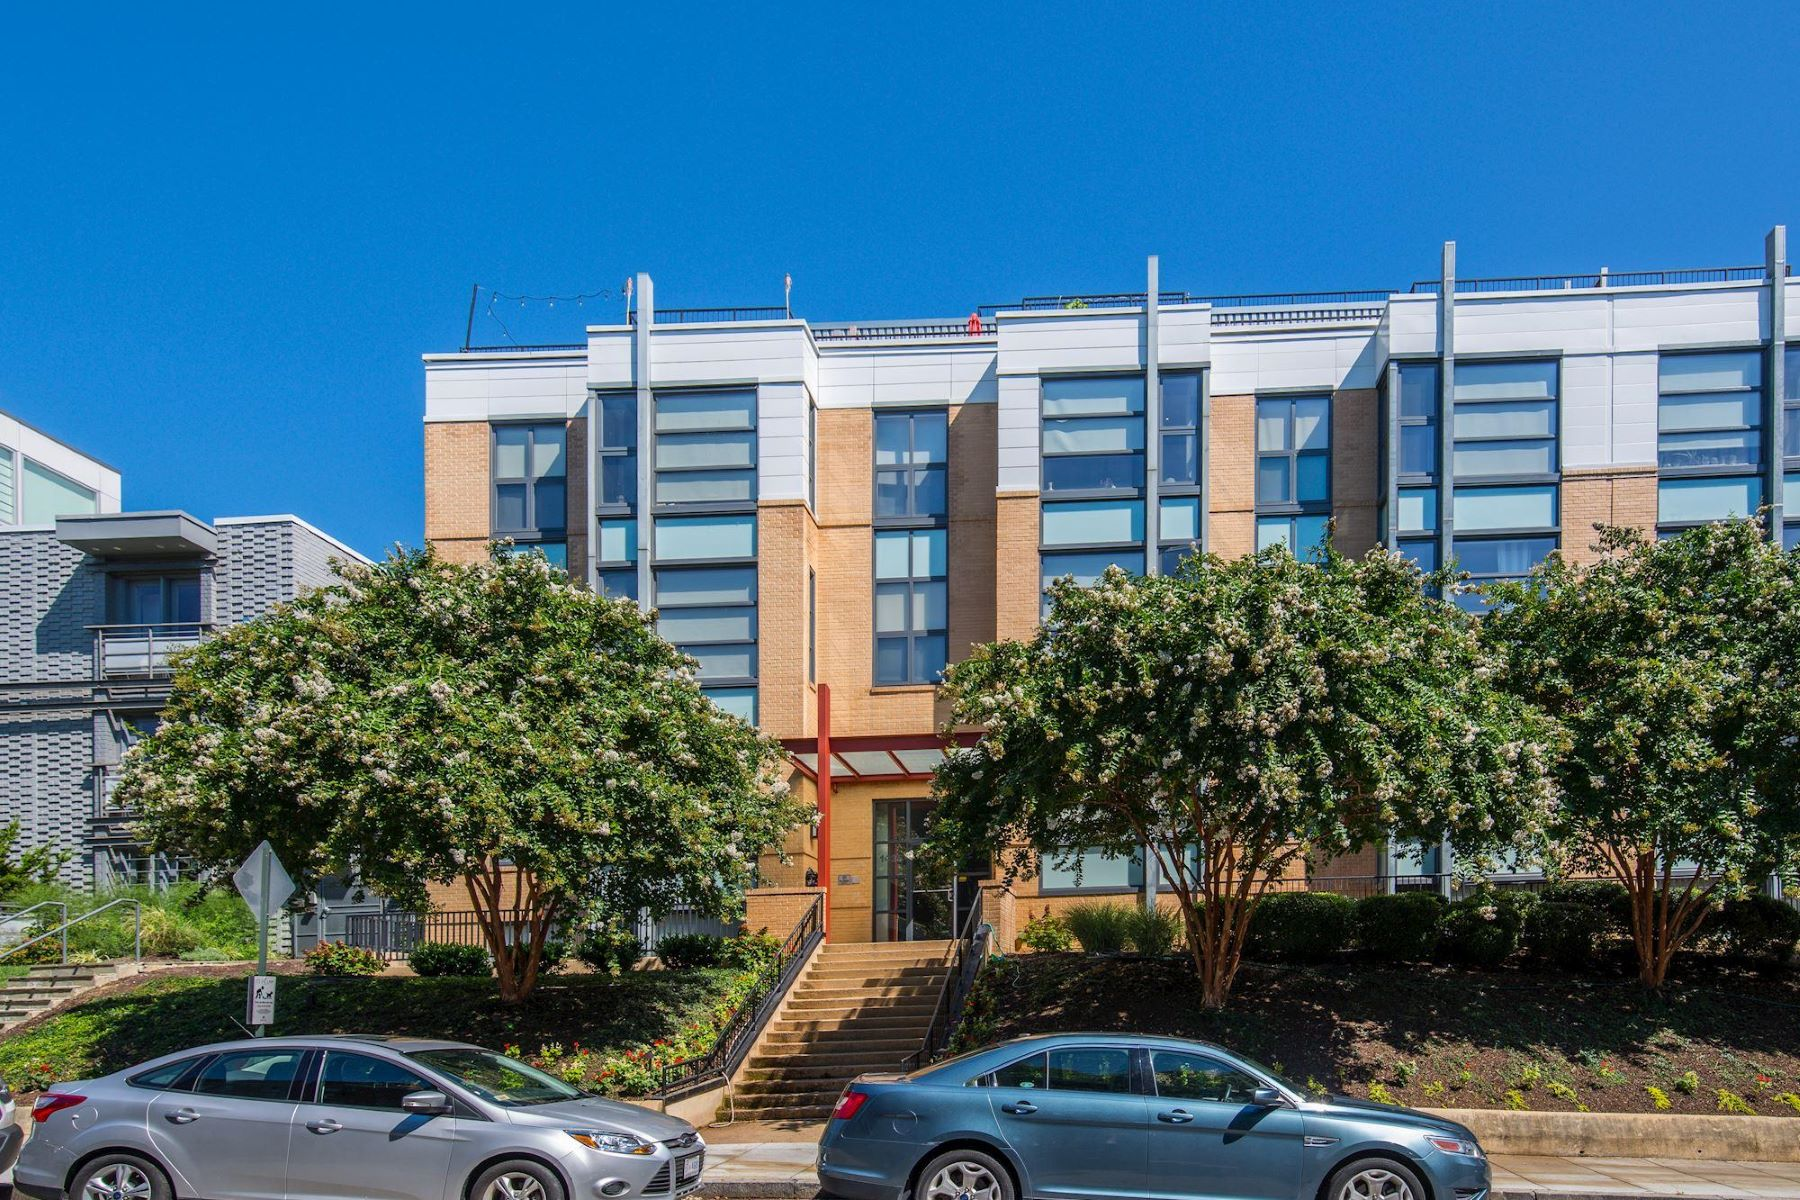 Condominium for Rent at 1435 Chapin St Nw #201 1435 Chapin St Nw #201 Washington, District Of Columbia 20009 United States